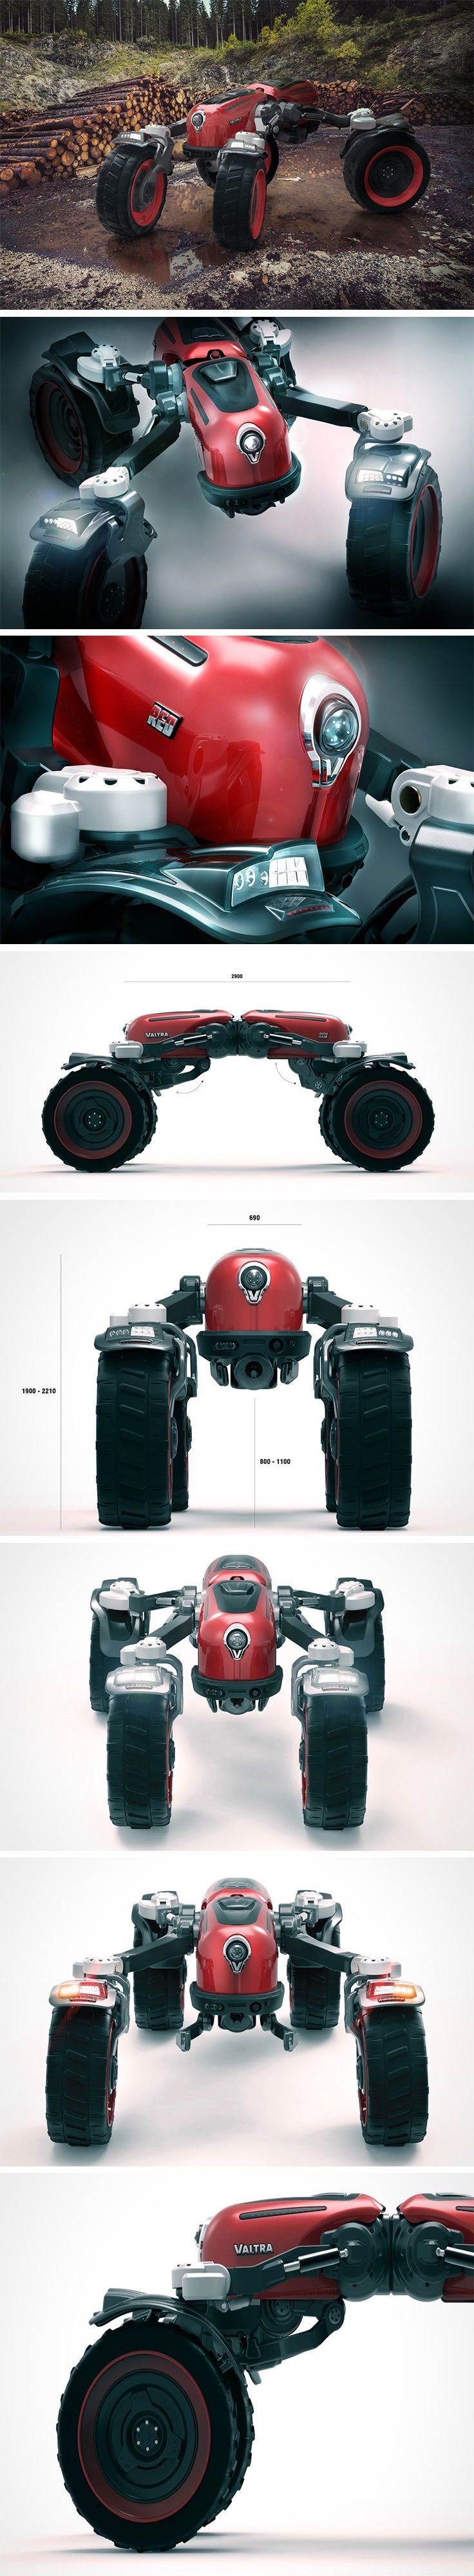 "Red is a semi-autonomous machine with a nearly unlimited number of heavy duty applications from forestry to construction thanks to its shape-shifting design. Its unique symmetrical structure enables instantaneous switching between moving directions. Additionally, each of its ""limbs"" can extend or contract to accommodate varying needs and spatial requirements."